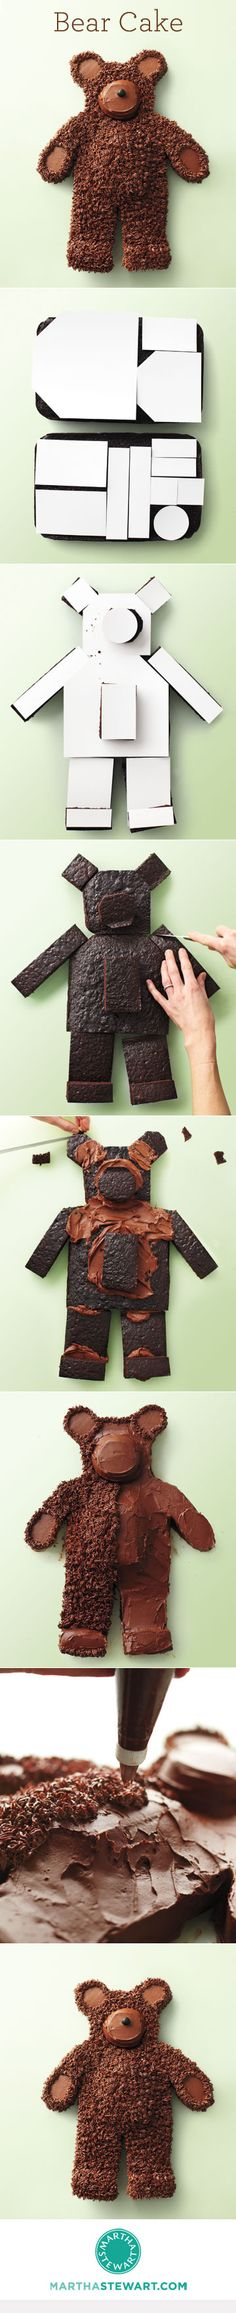 tutorial: How to Make a teddy Bear Cake